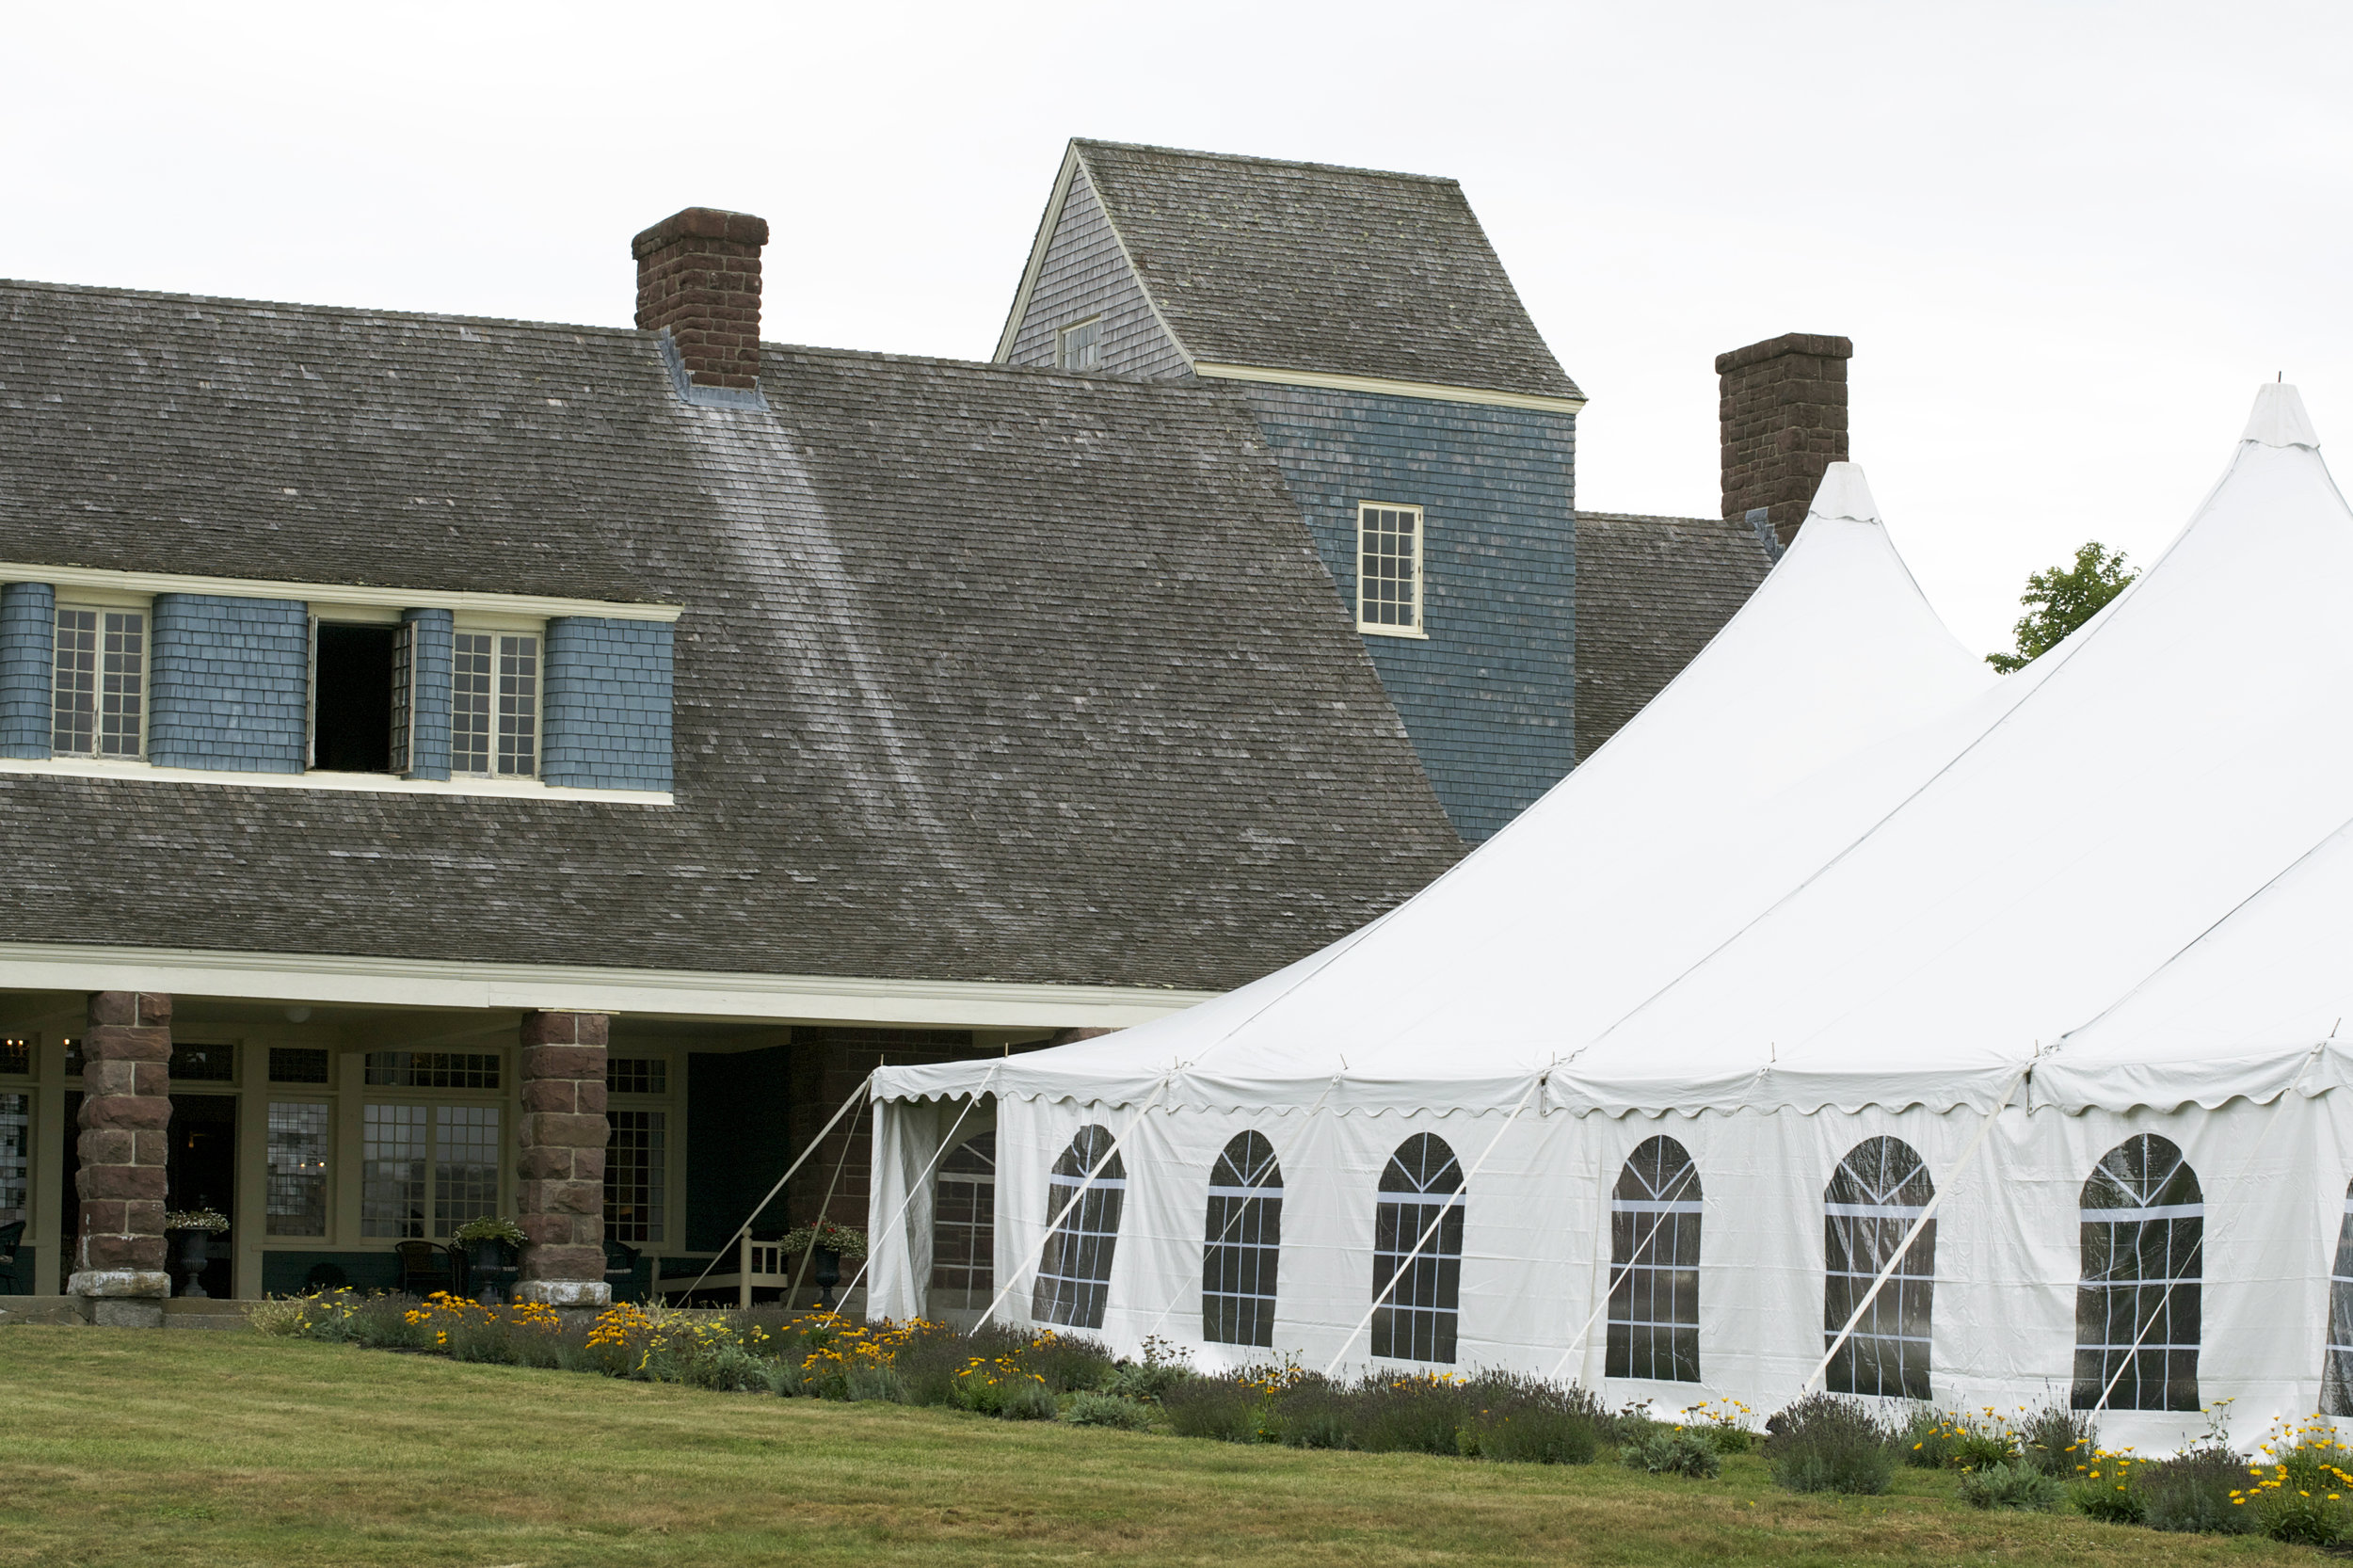 house-and-tent-closeup.jpg